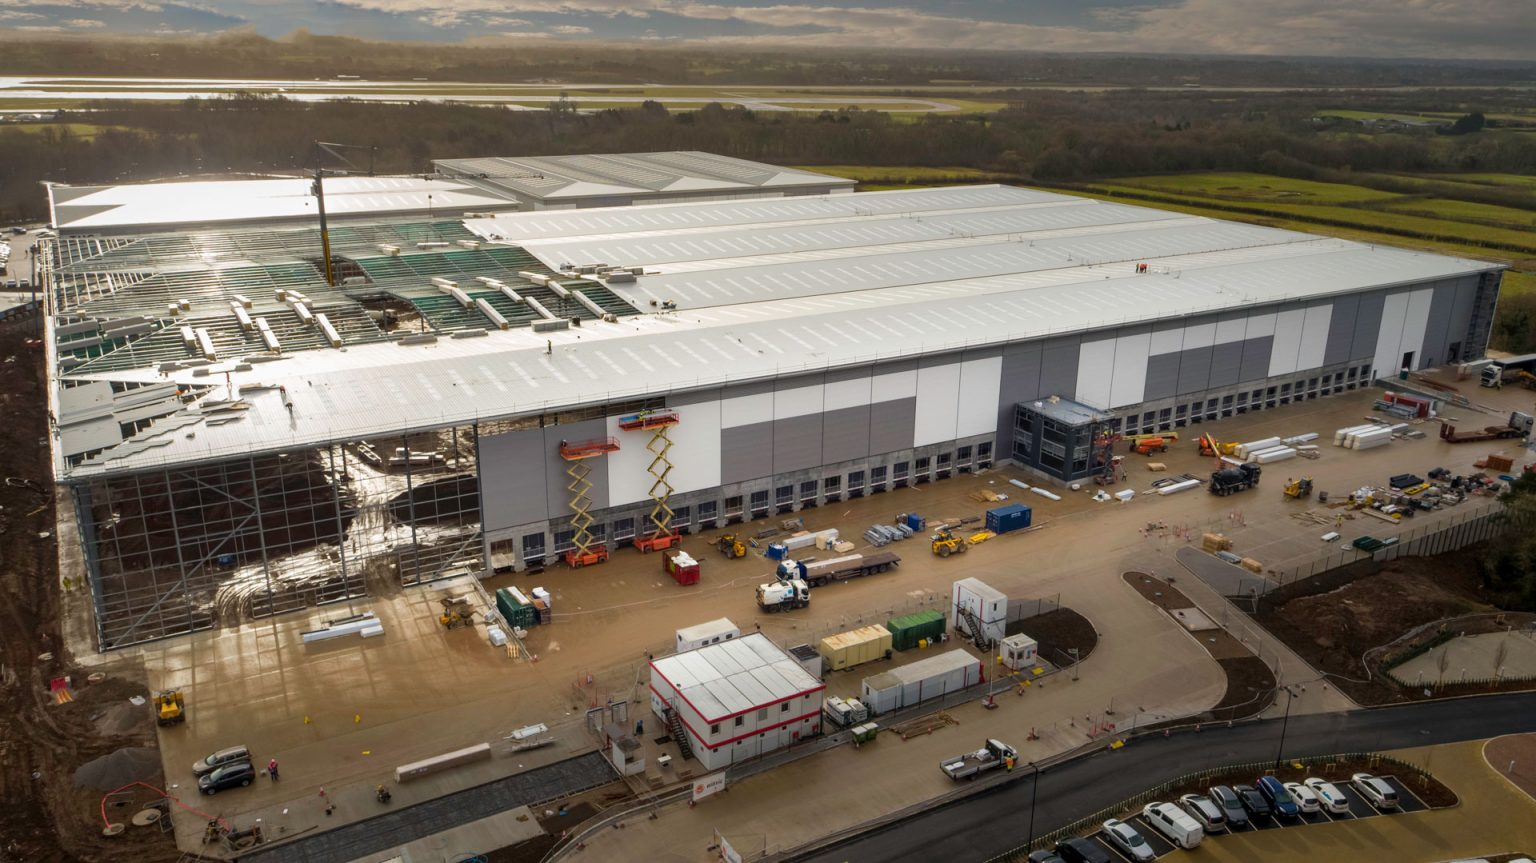 West Siphonics Systems England Scotland Siphonic Roof Drainage Specialists Design Manufacture Installation Project Management ICON 2 Manchester Airport 2